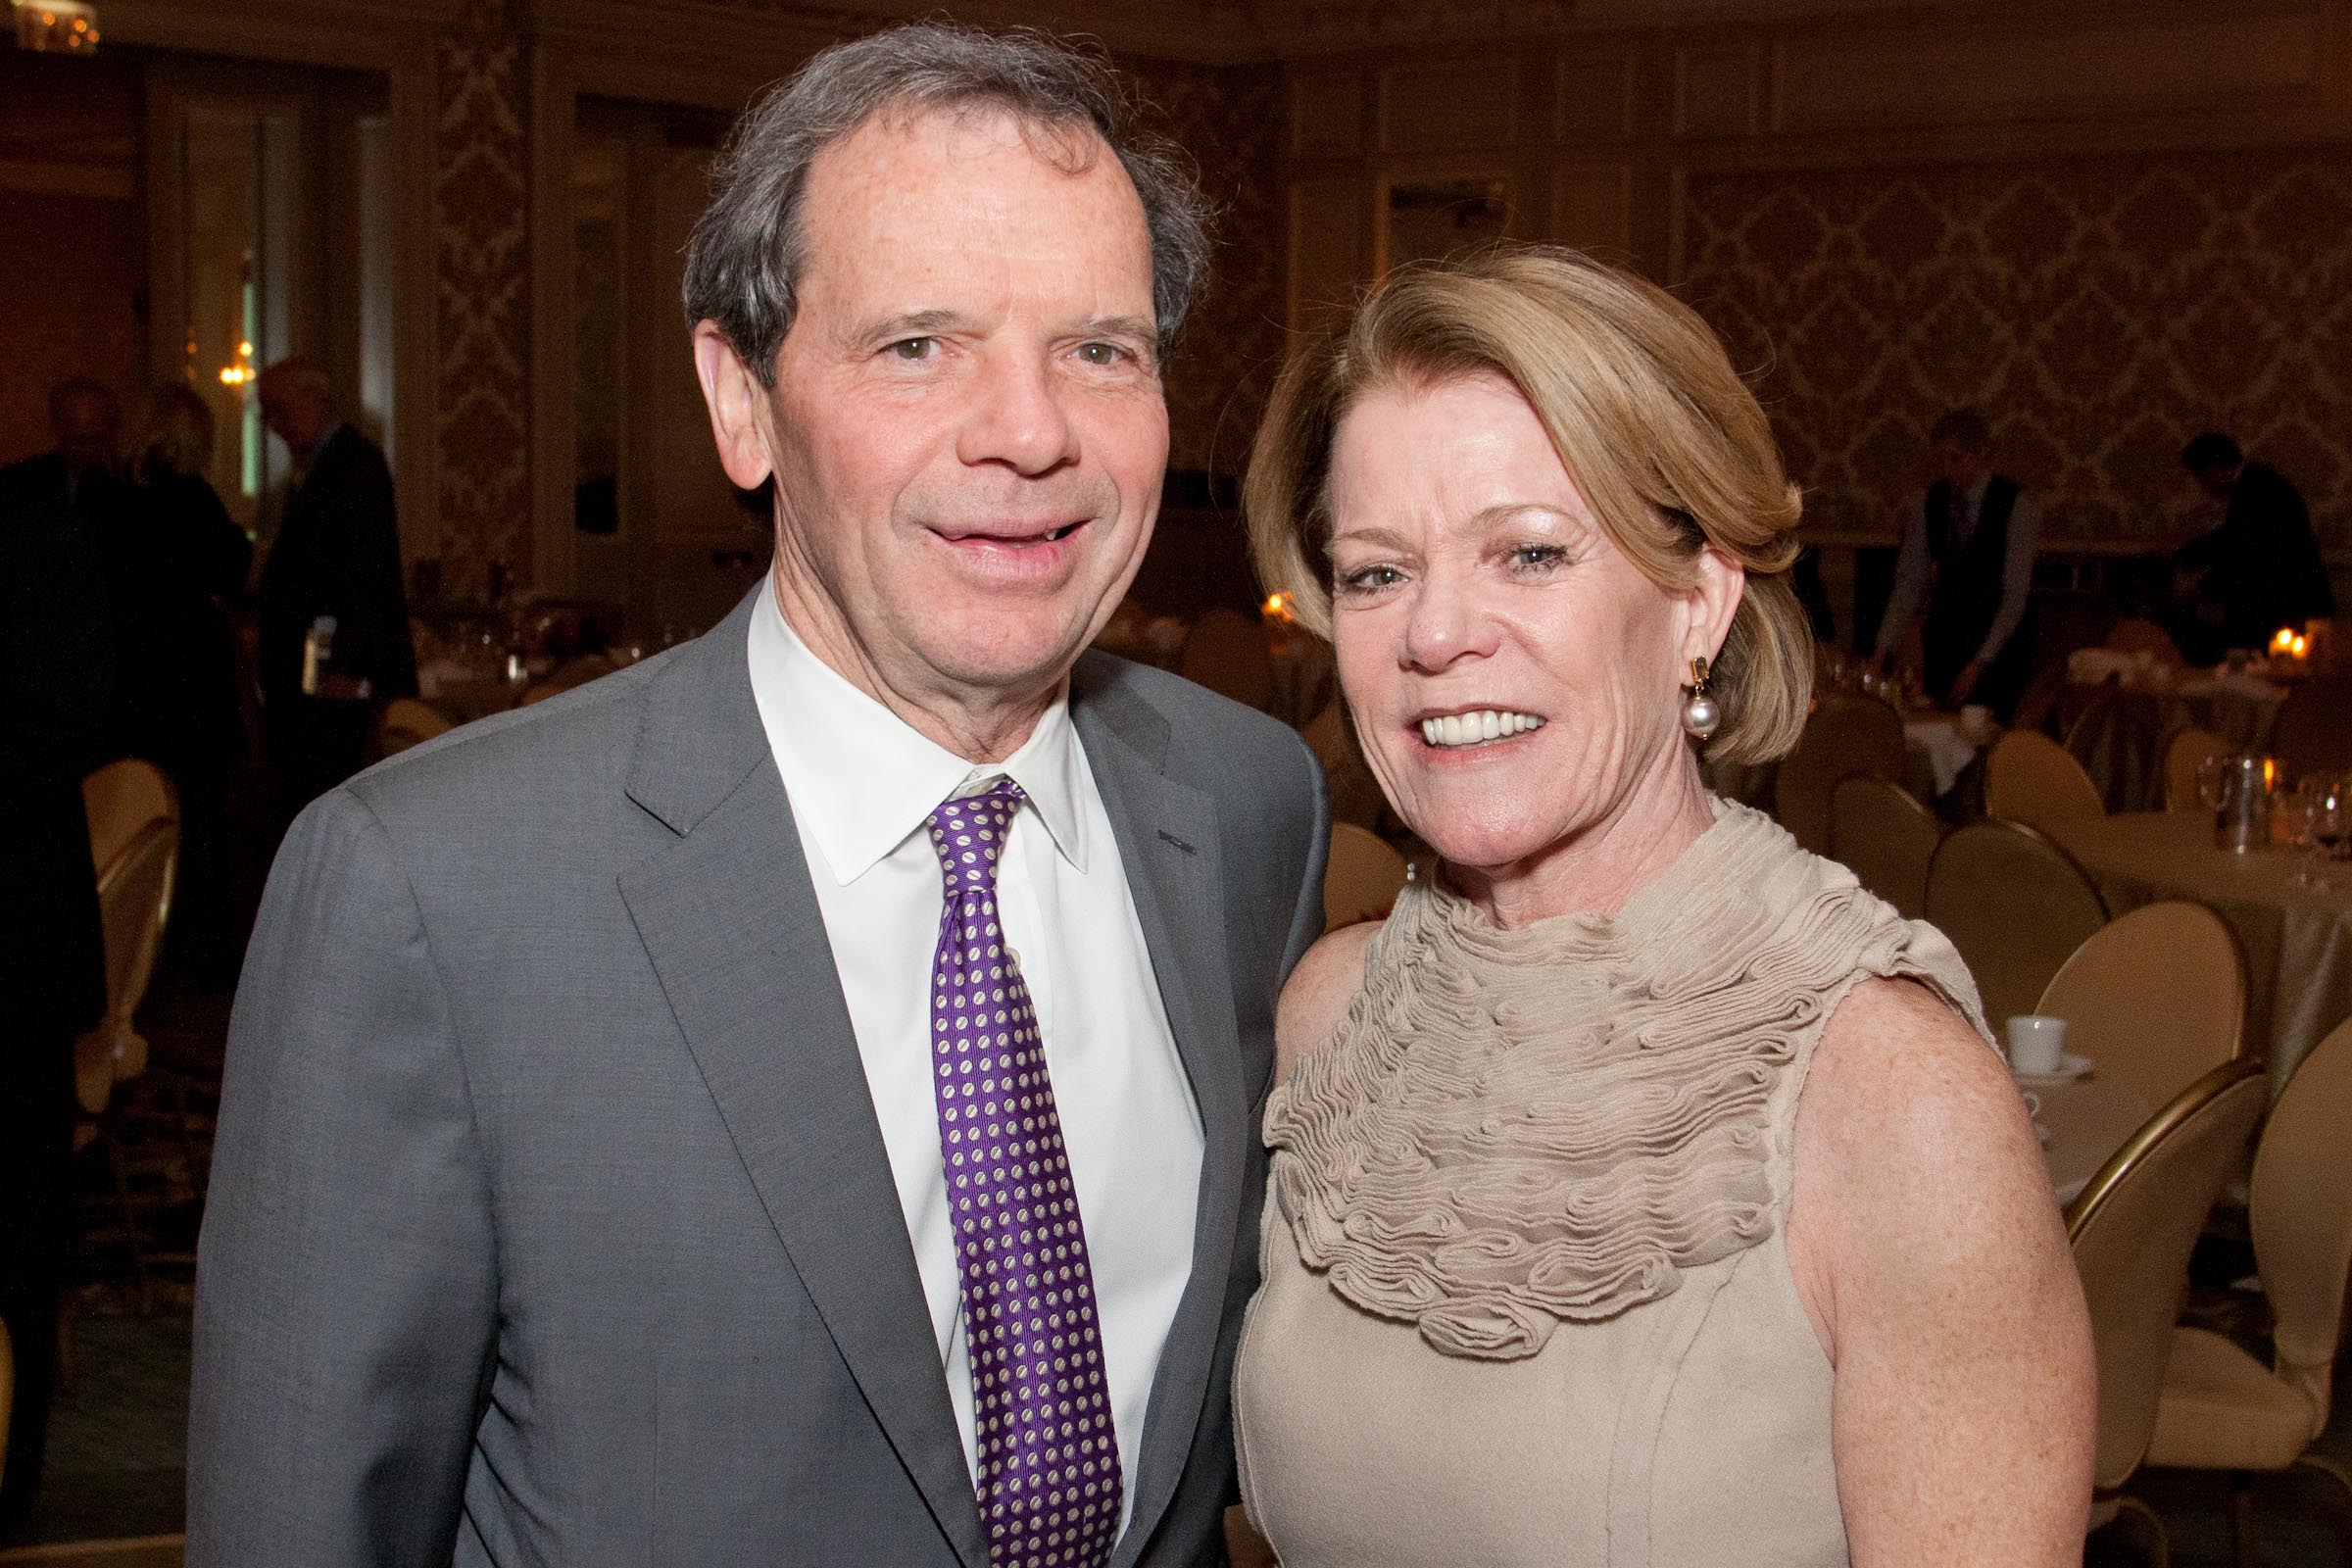 State Sen. John Cullerton and Pam Cullerton in 2012.